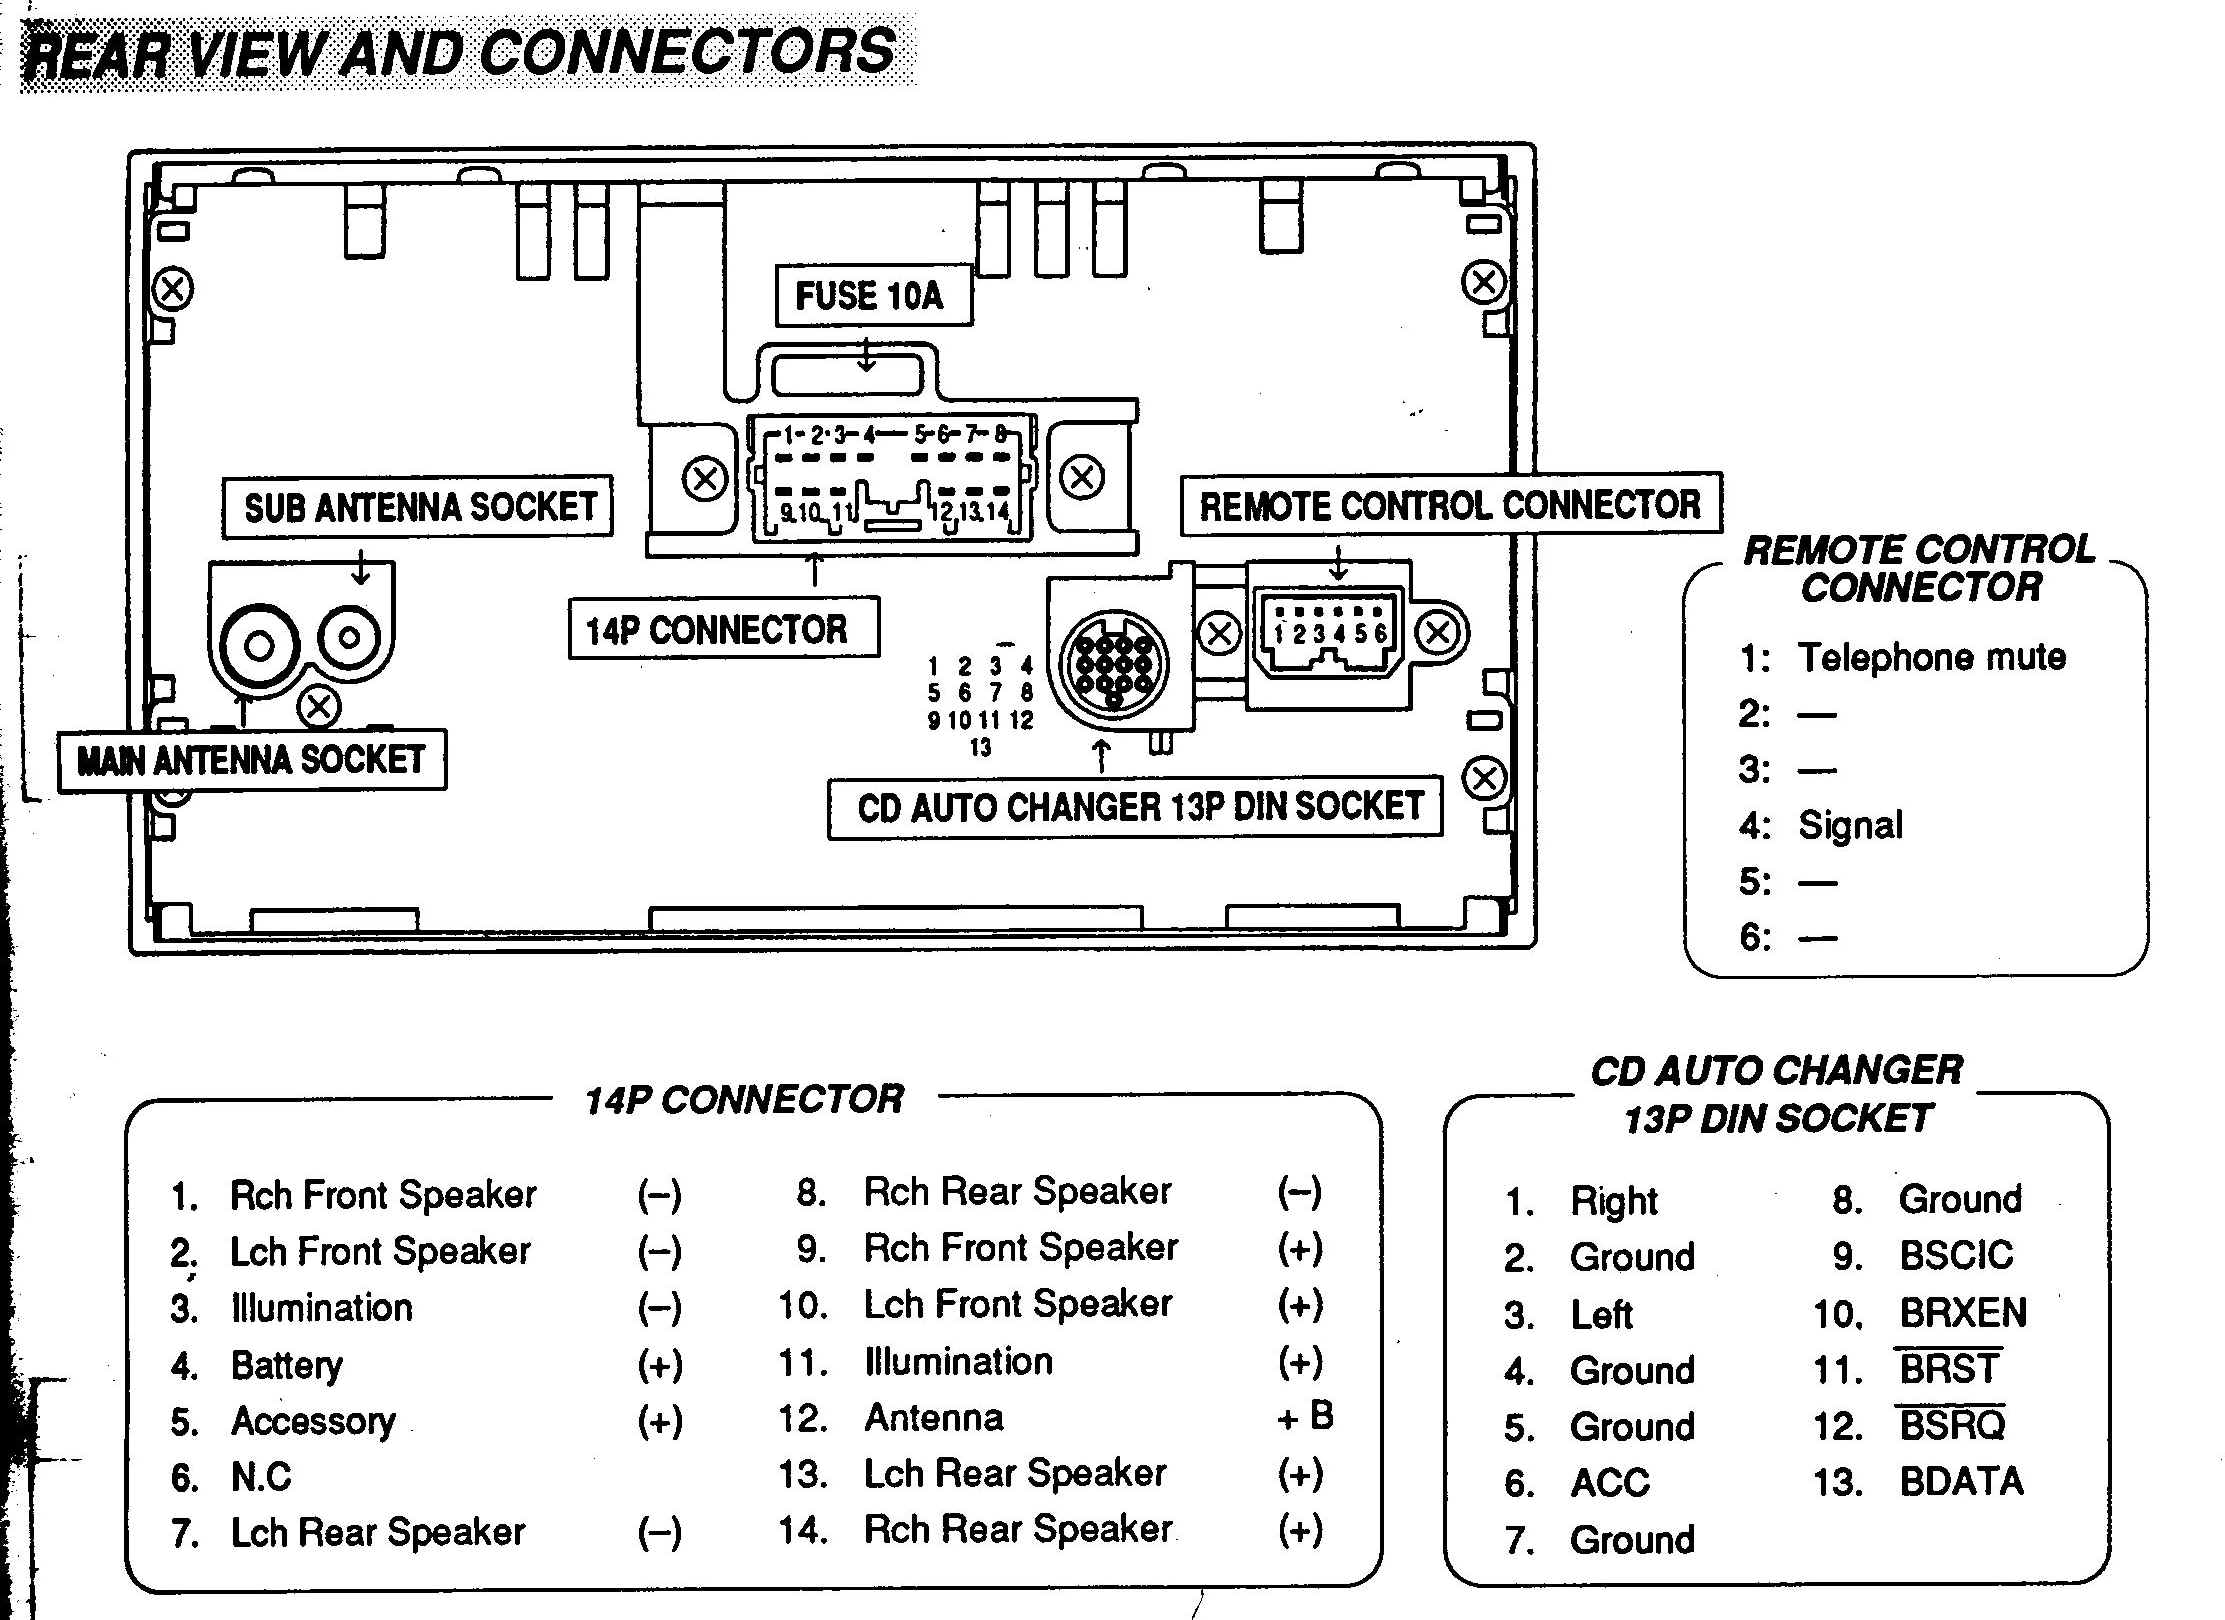 WireHarnessMit121003 mitsubishi radio wiring diagram mitsubishi eclipse wiring diagram mitsubishi pajero radio wiring diagram at gsmportal.co